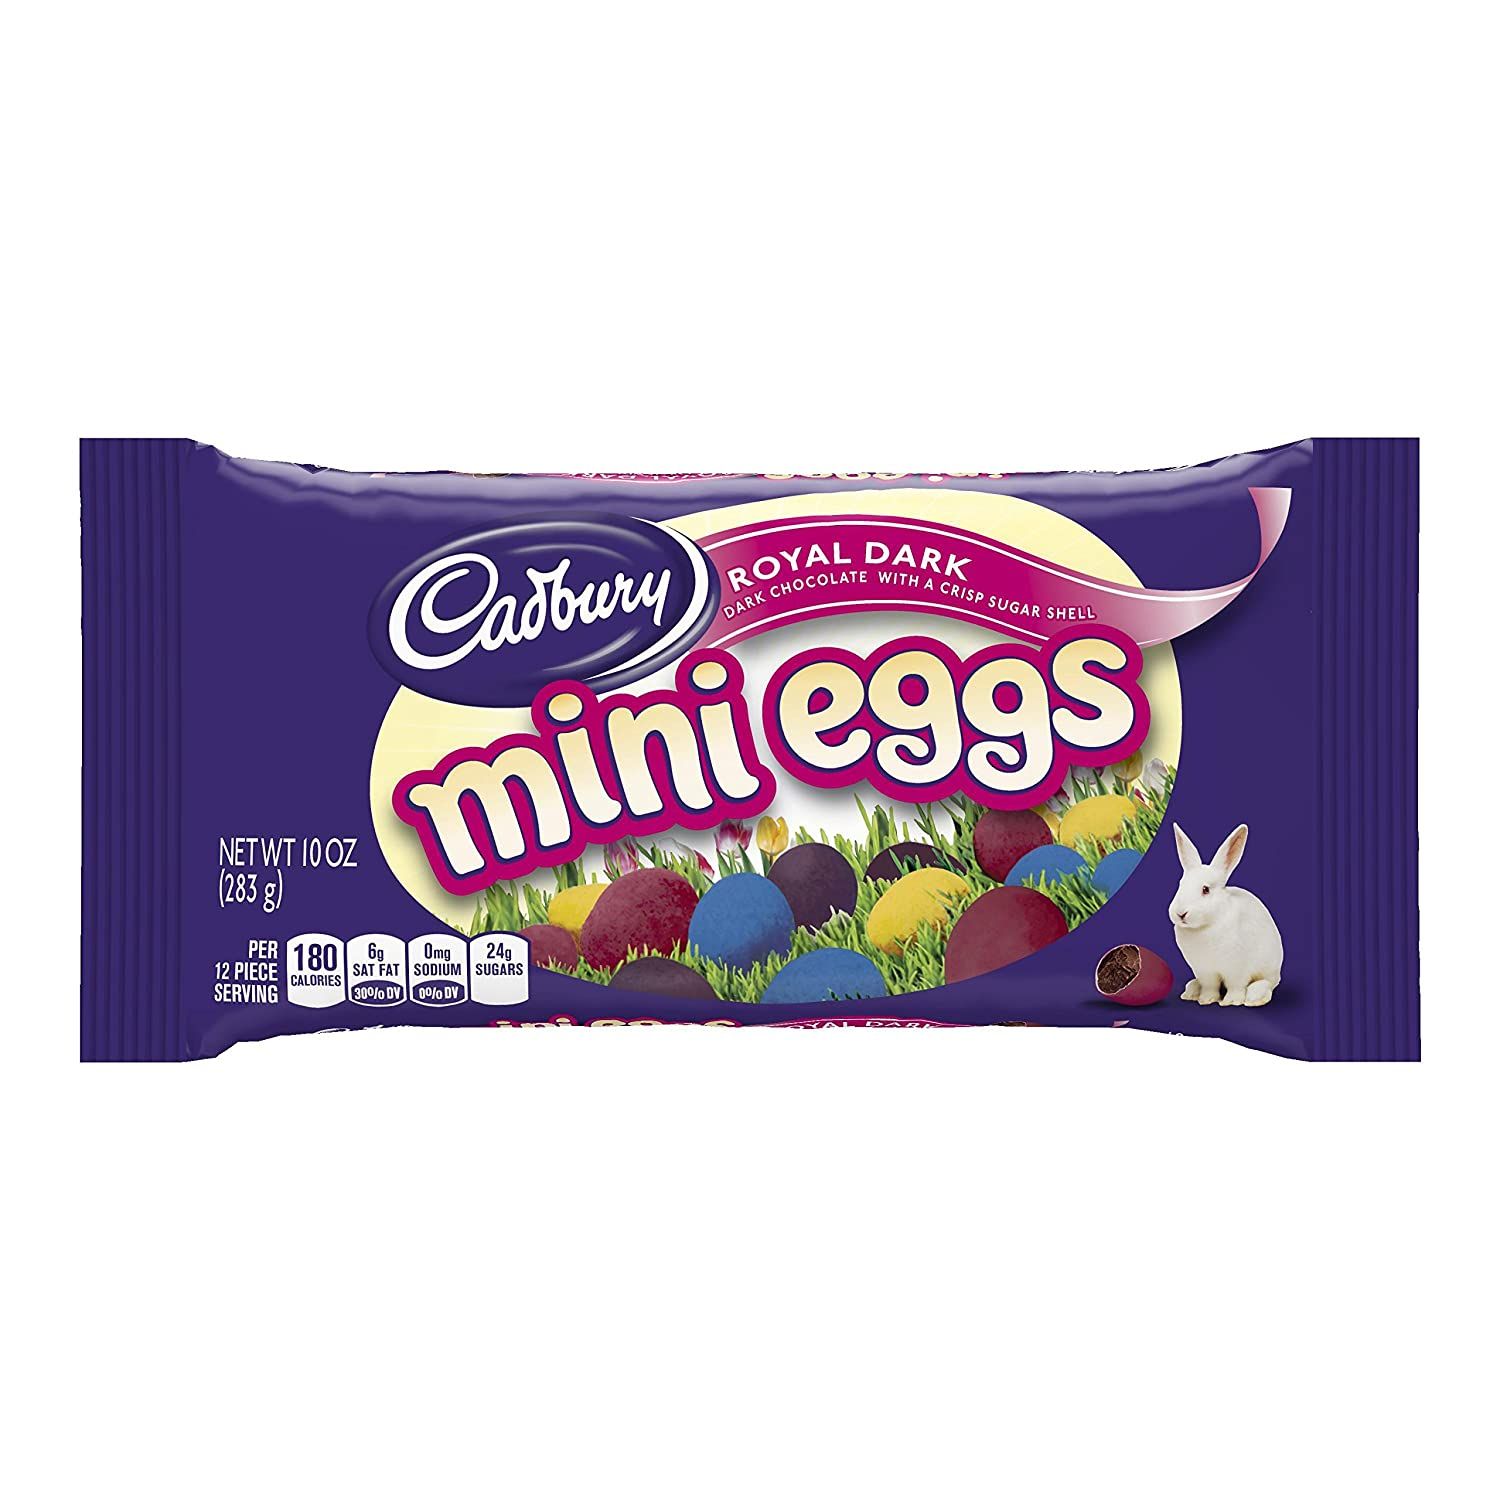 Cadbury Easter Chocolate 10 Ounce Packages Image 1